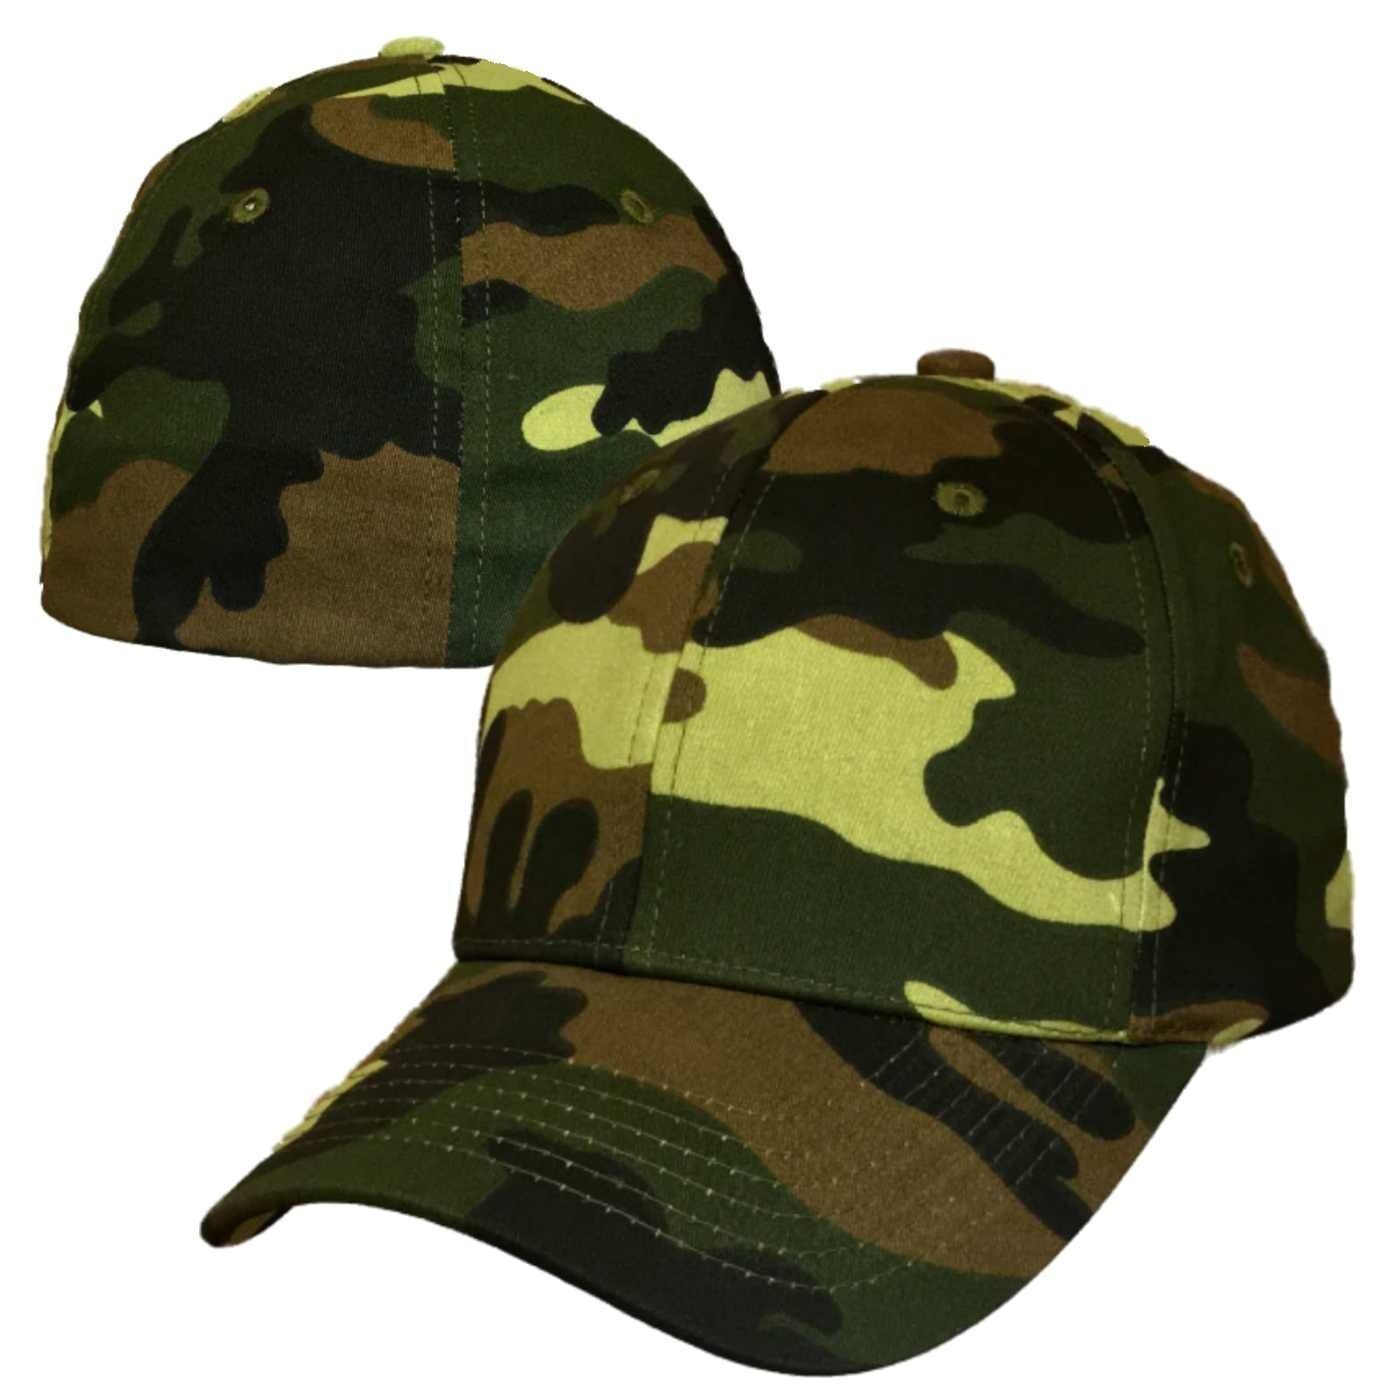 Details about Forest Camo Camouflage Military Tactical Flex Baseball Fit  Fitted Ball Cap Hat a6829690124